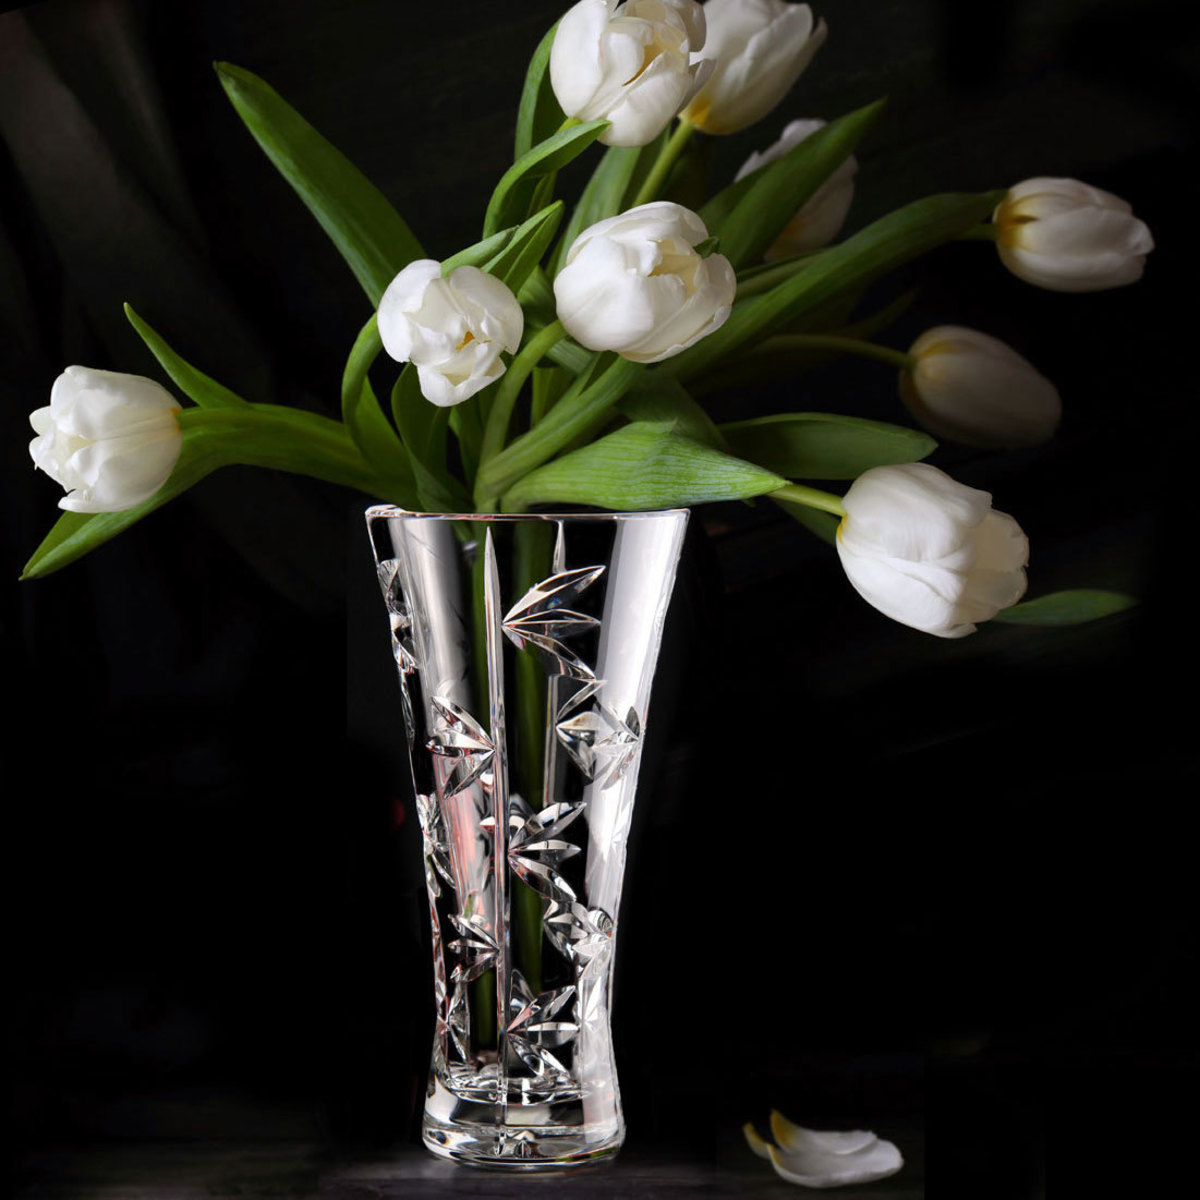 The crystal Ireland vase in tulips.